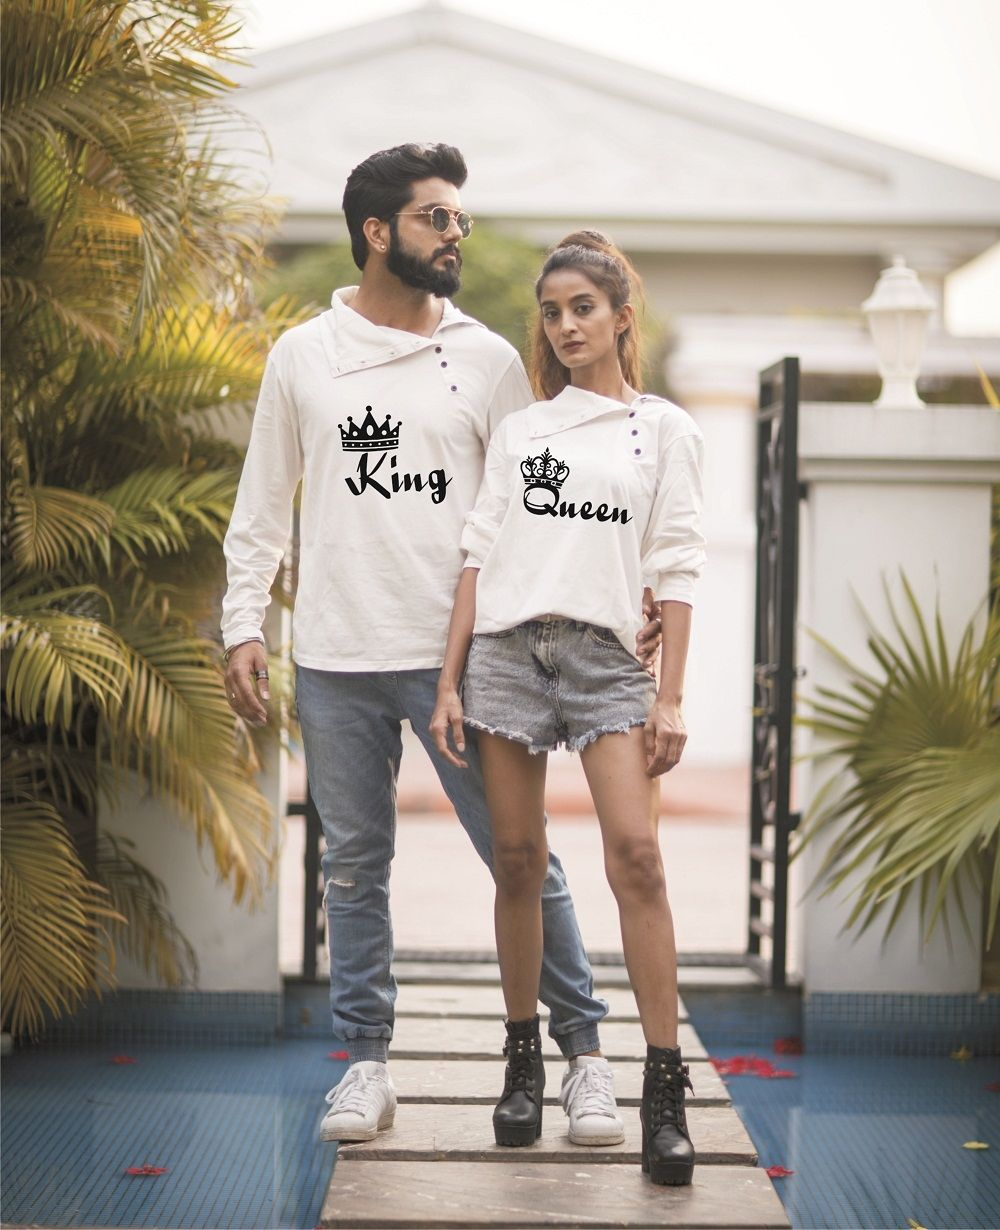 791a6f3171 Buy Kian Shopee's Personalized King Queen White Couple Tees Online at Low  prices in India on